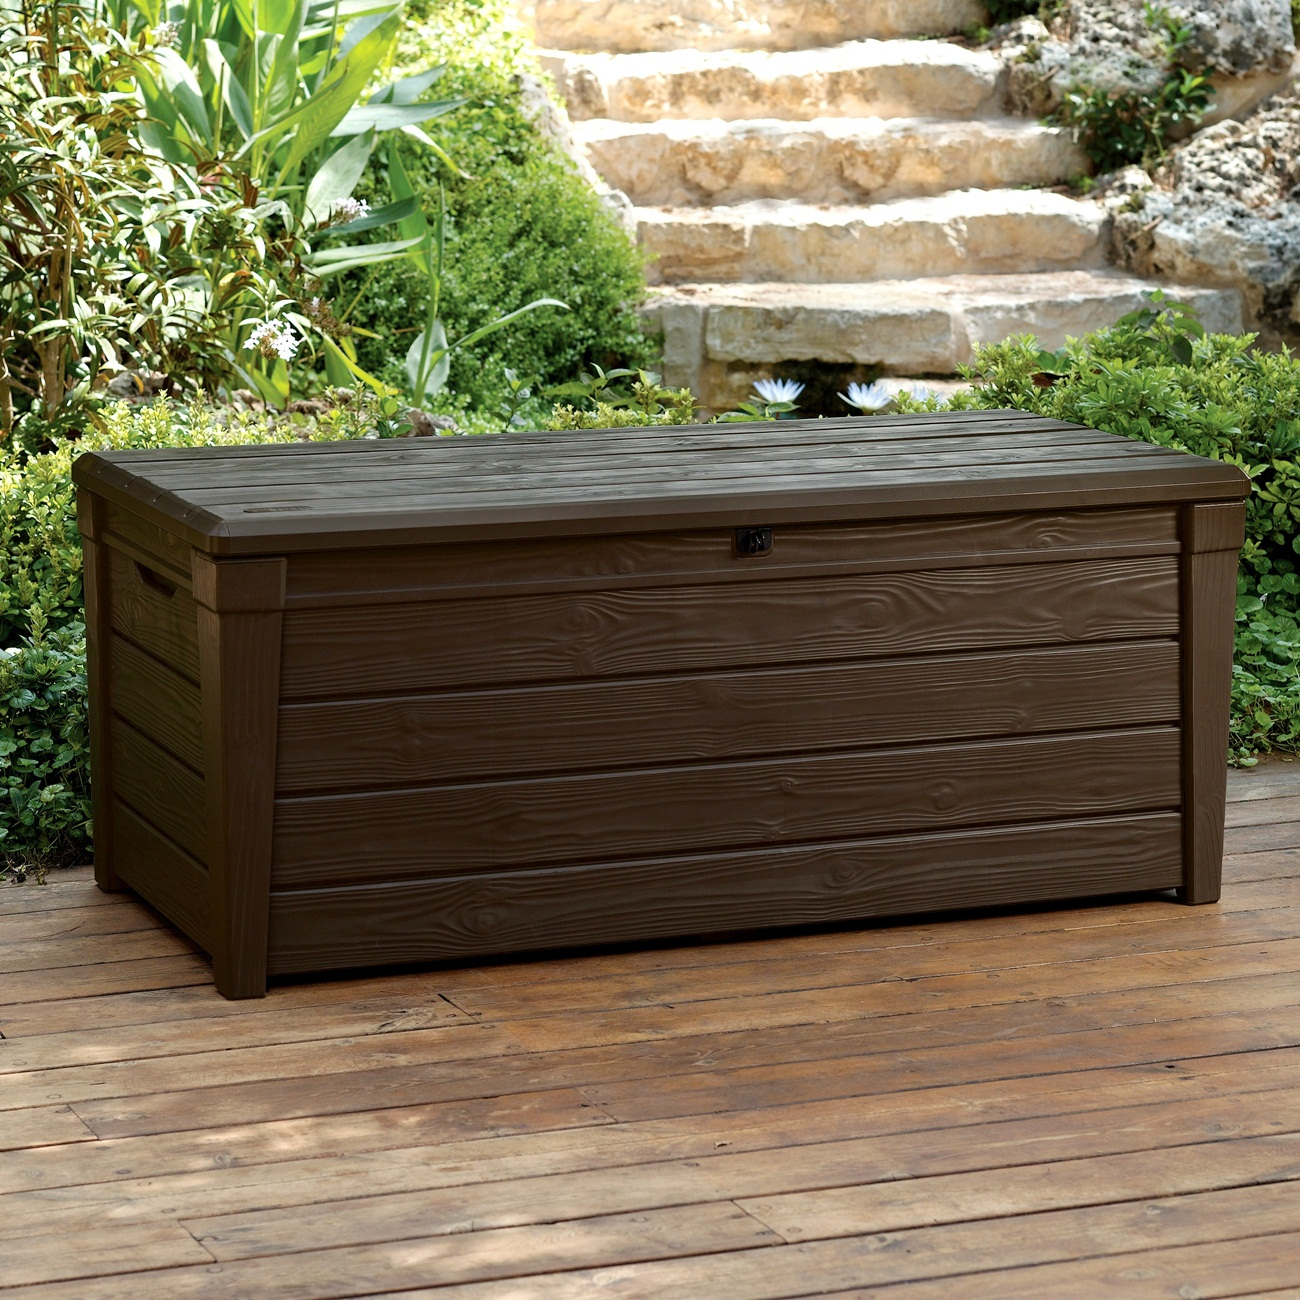 Image of: Wood Patio Cushion Storage